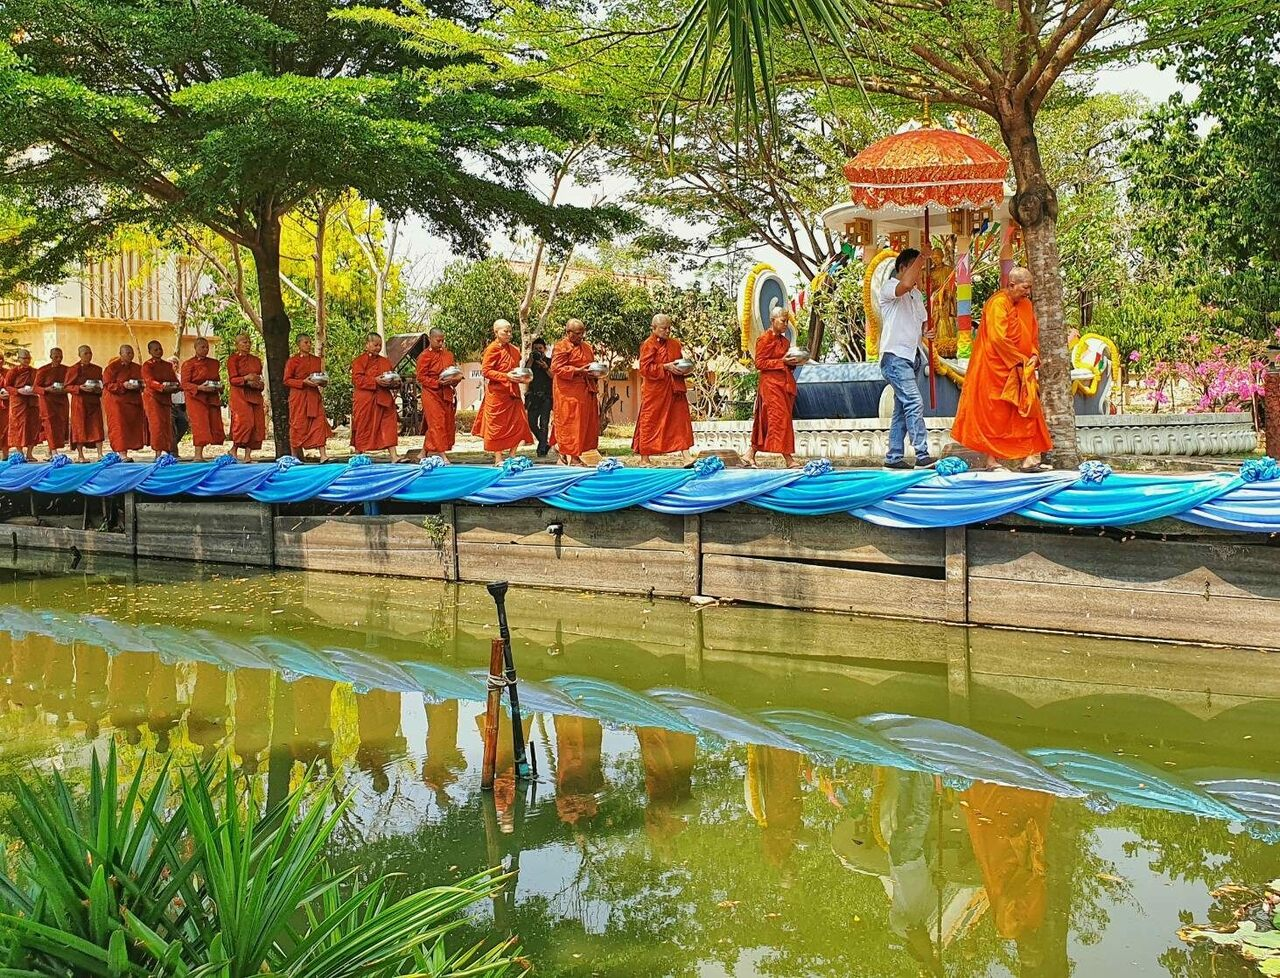 The monks collect alms in Nakhon Pathom province.